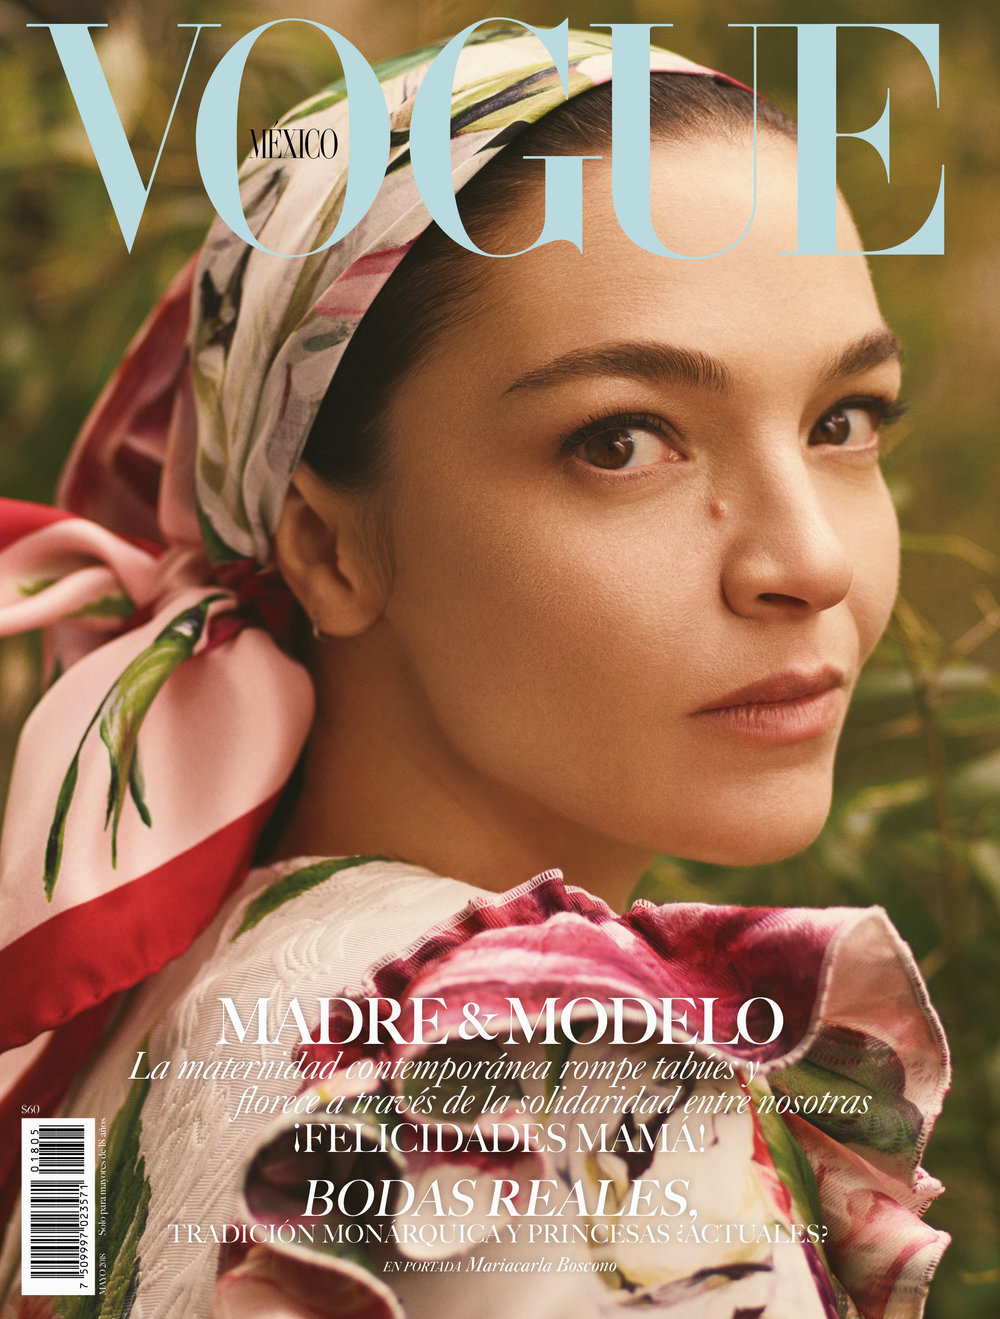 000 Portada Vogue MX Mayo 1.jpg